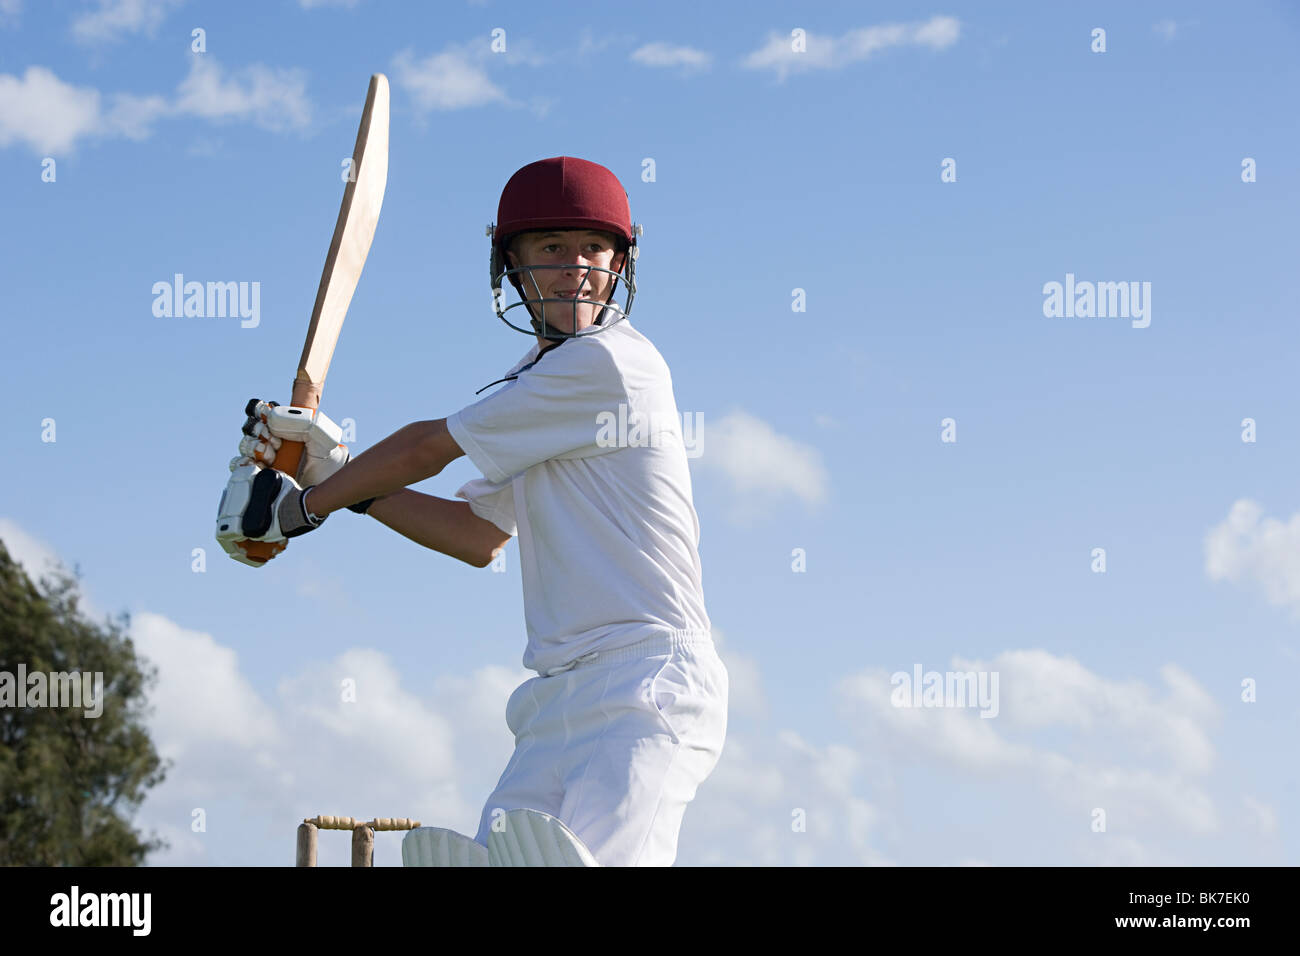 Auckland, cricket player - Stock Image